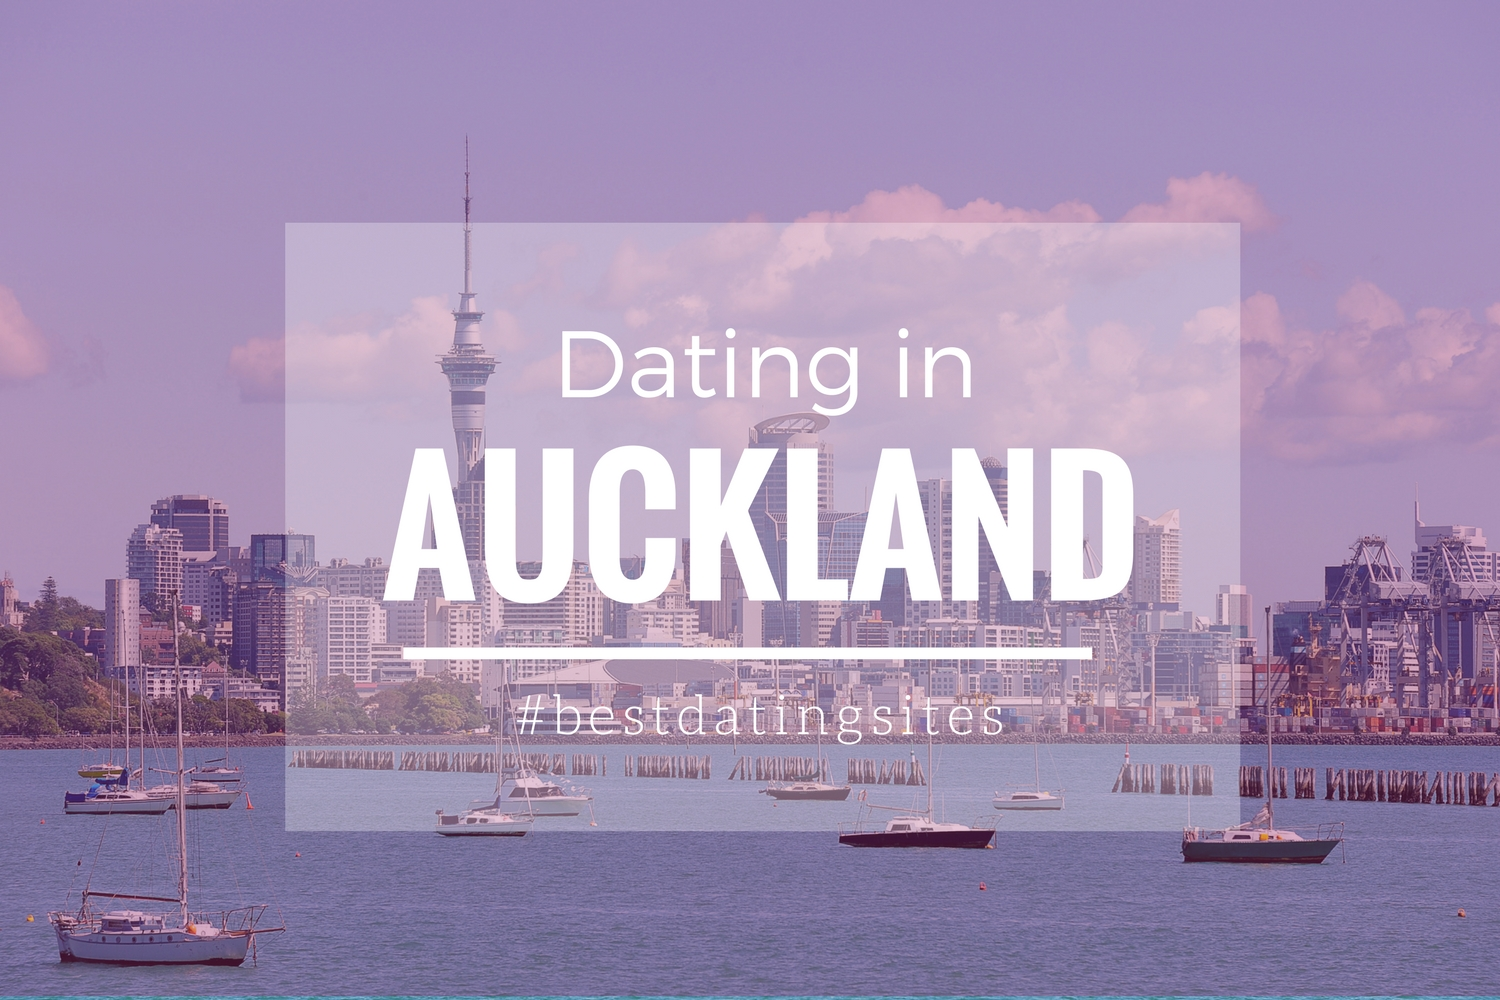 Free dating auckland dropbox not updating on ipad